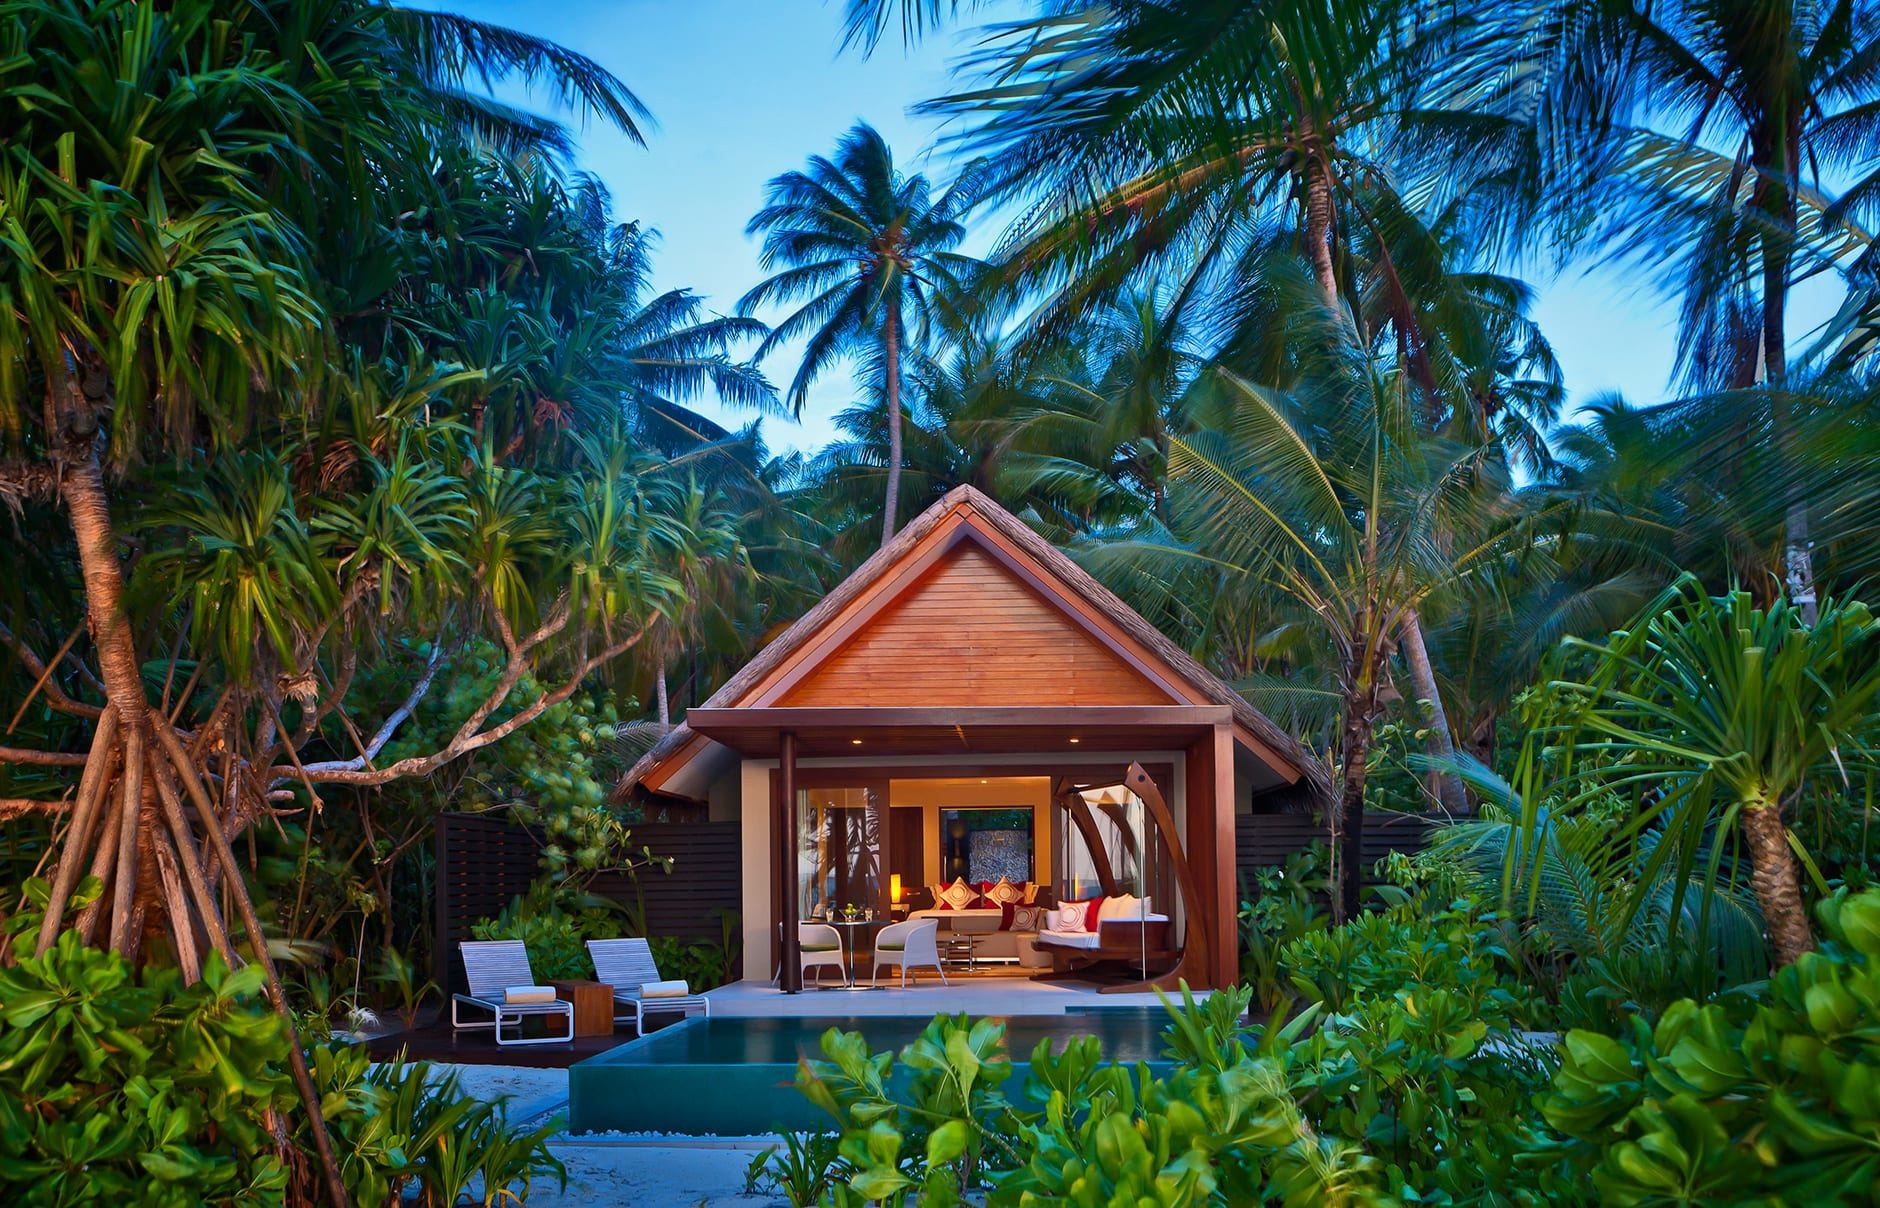 Niyama Beach Studio with pool. Niyama, Maldives. © Per AQUUM